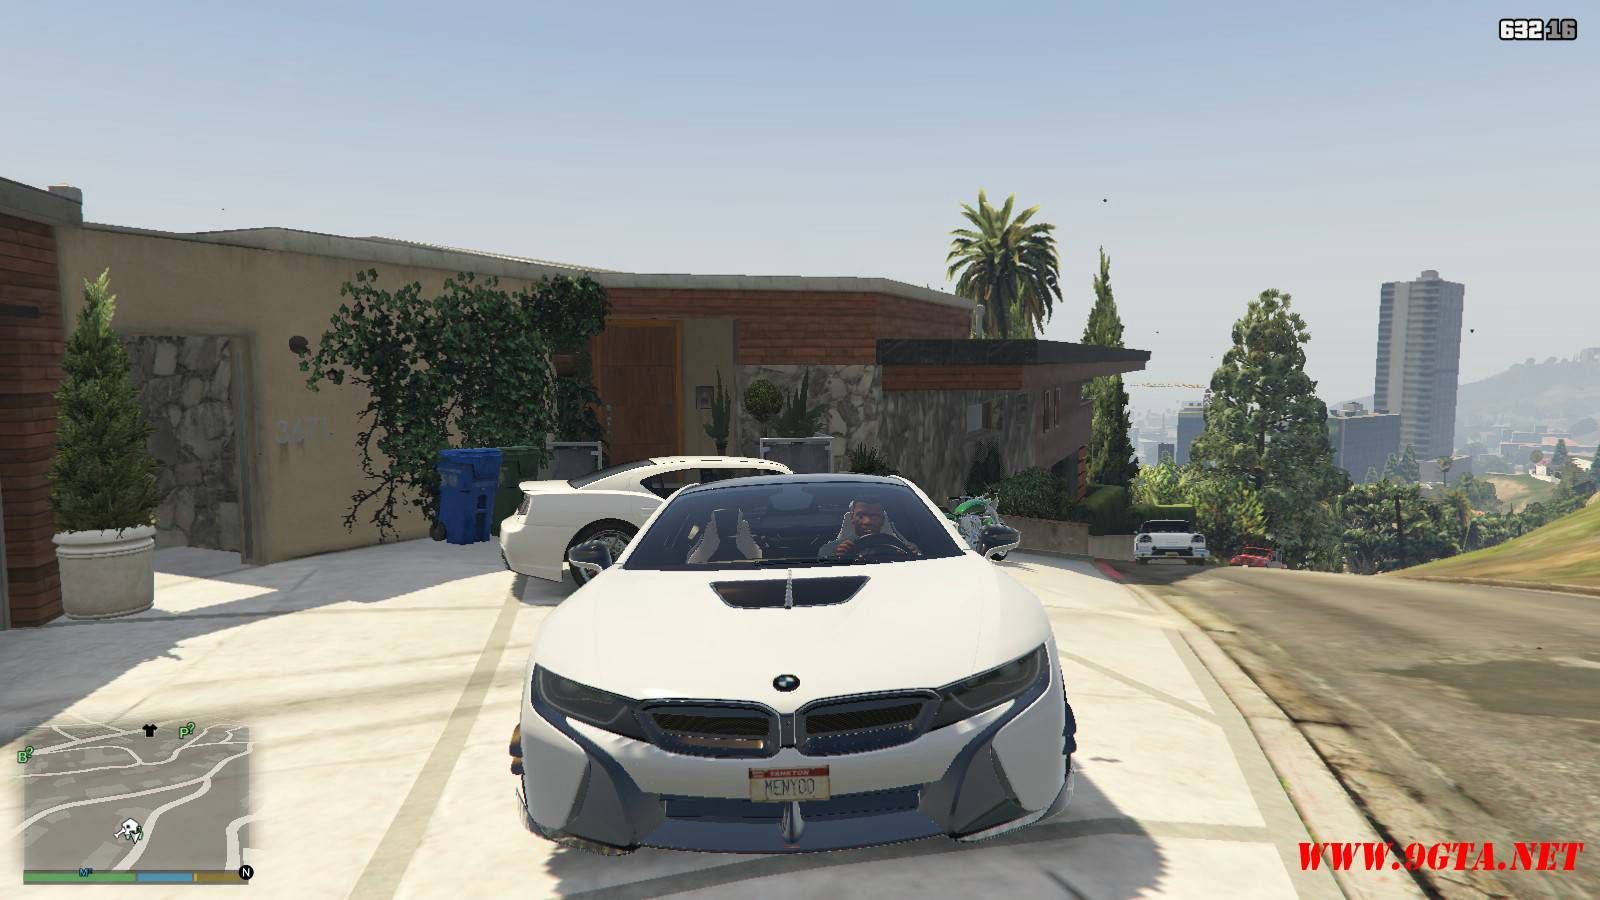 BMW i8 AC Schinitzer ACS8 Mod For GTA5 (9)